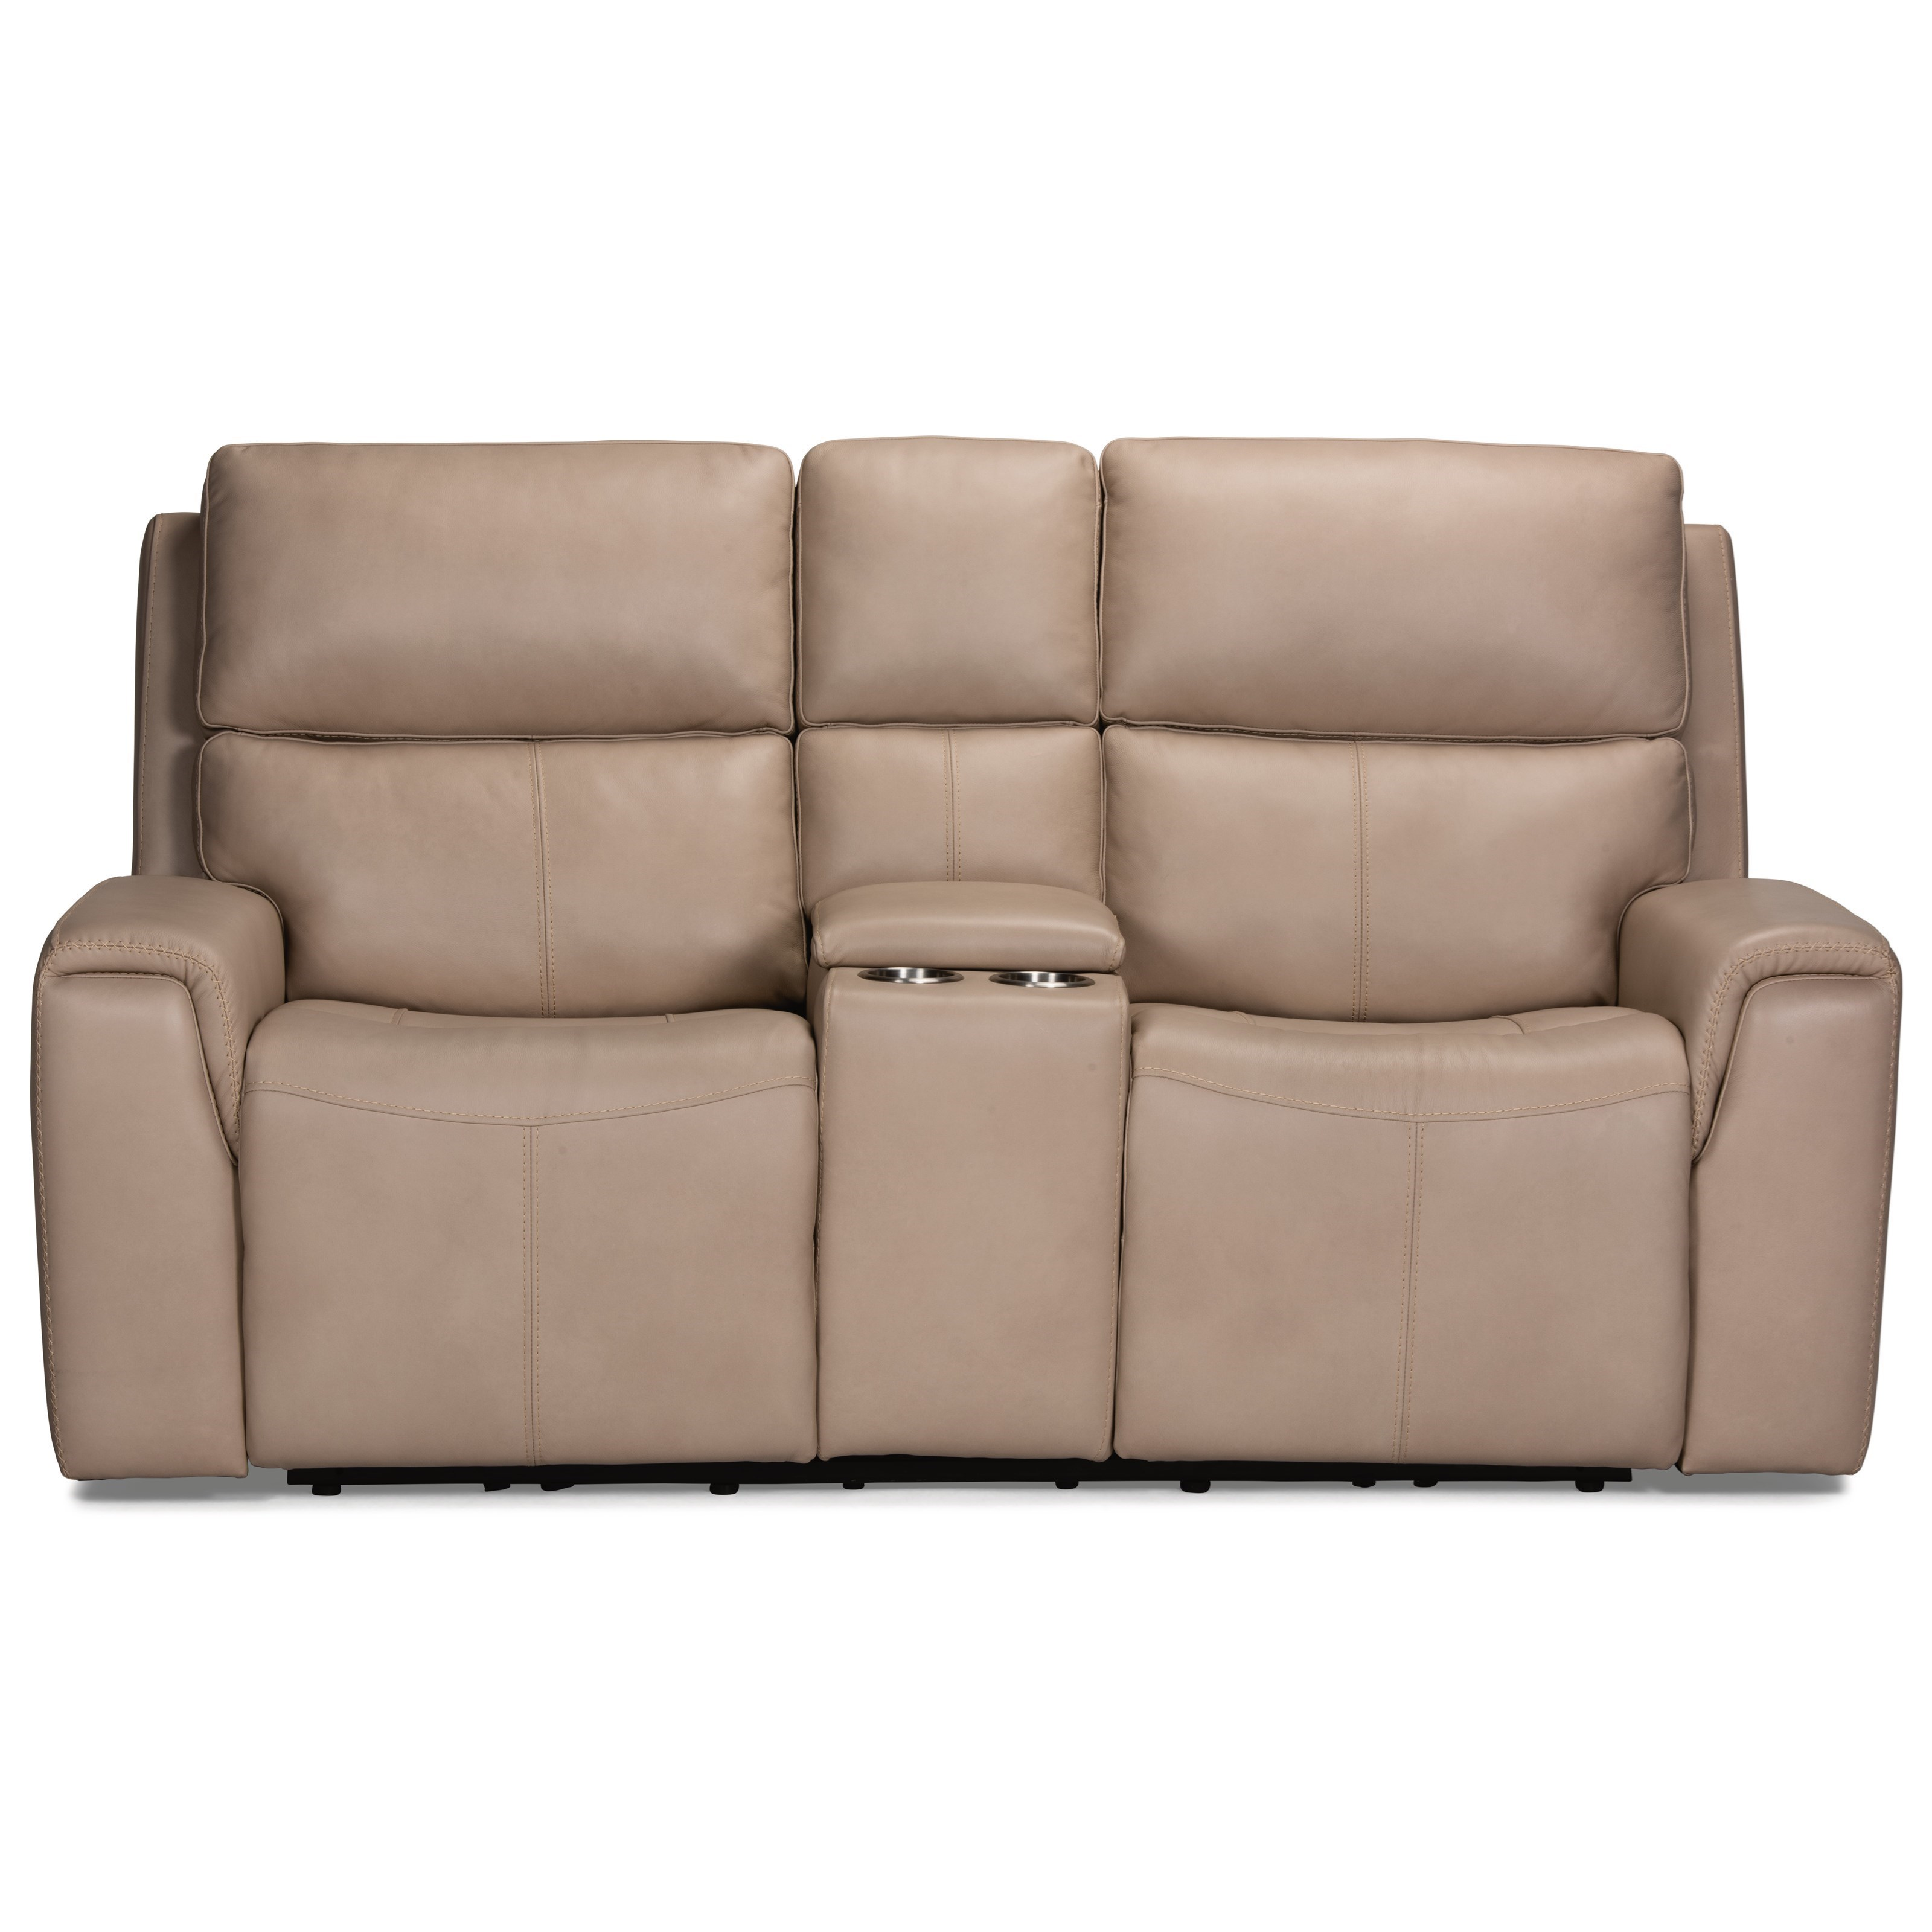 Latitudes - Jarvis Power Reclining Loveseat by Flexsteel at Darvin Furniture